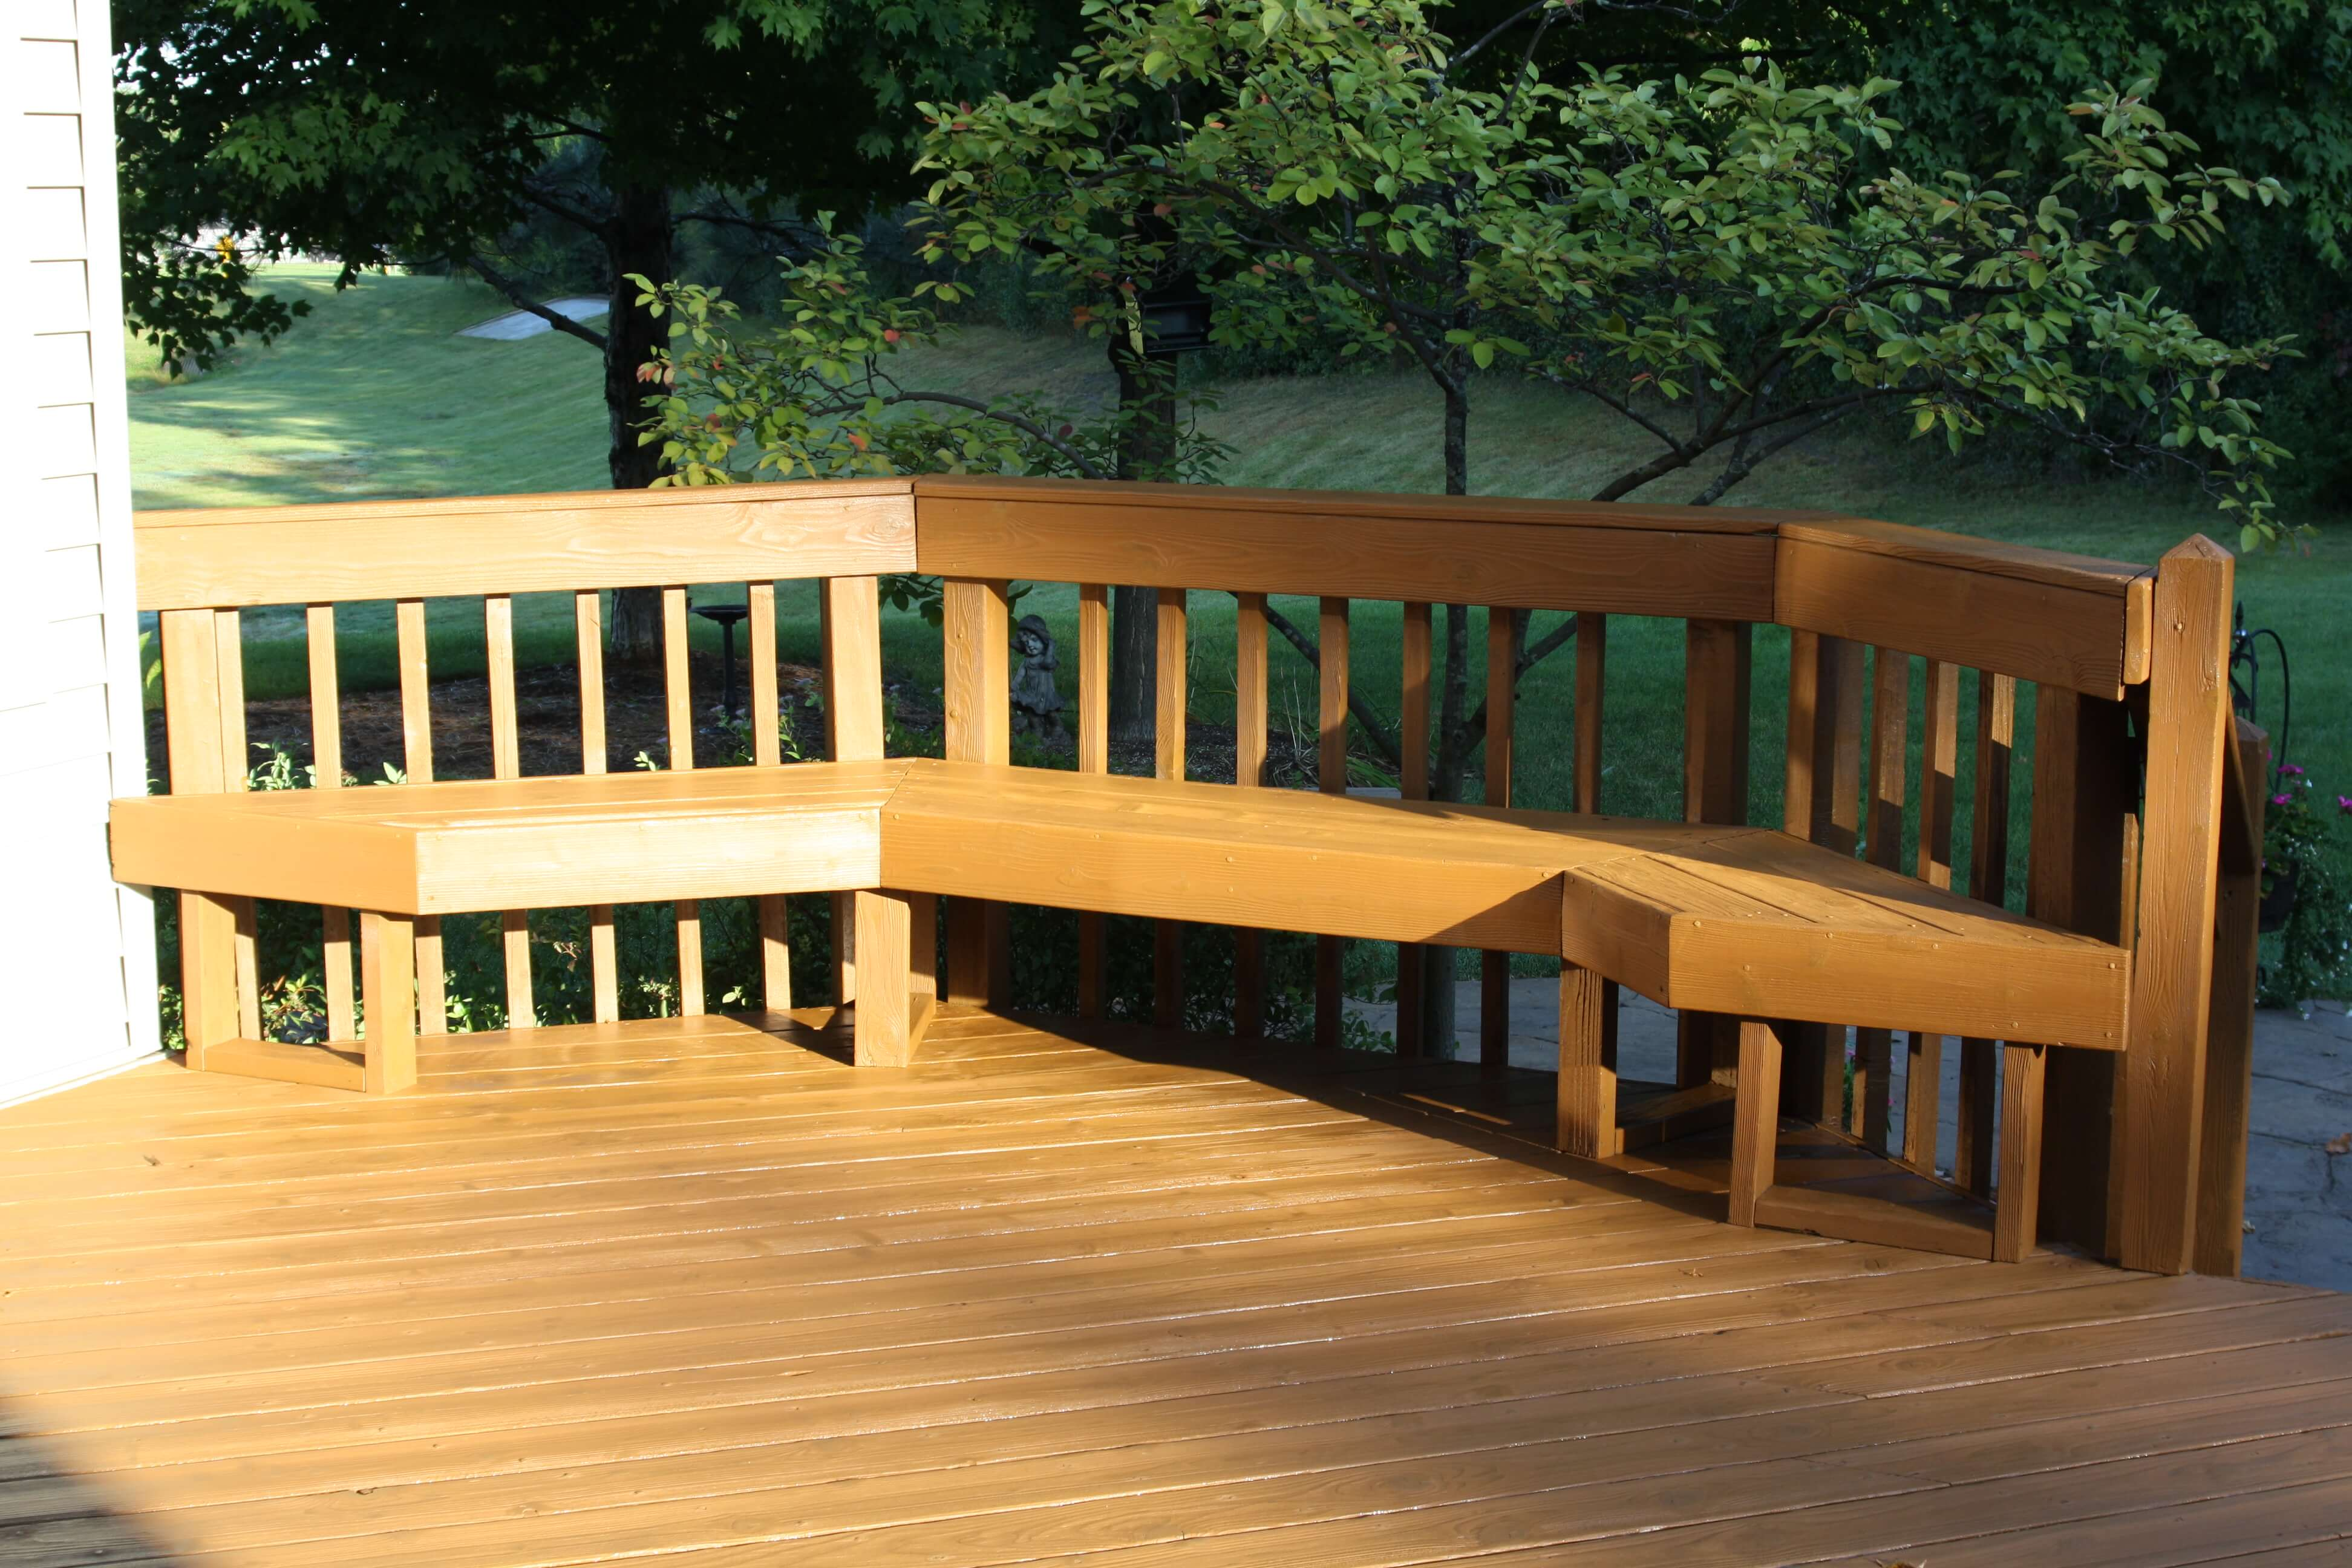 Seating area of a raised deck that has recently been stained with a semi transparent cedar stain.